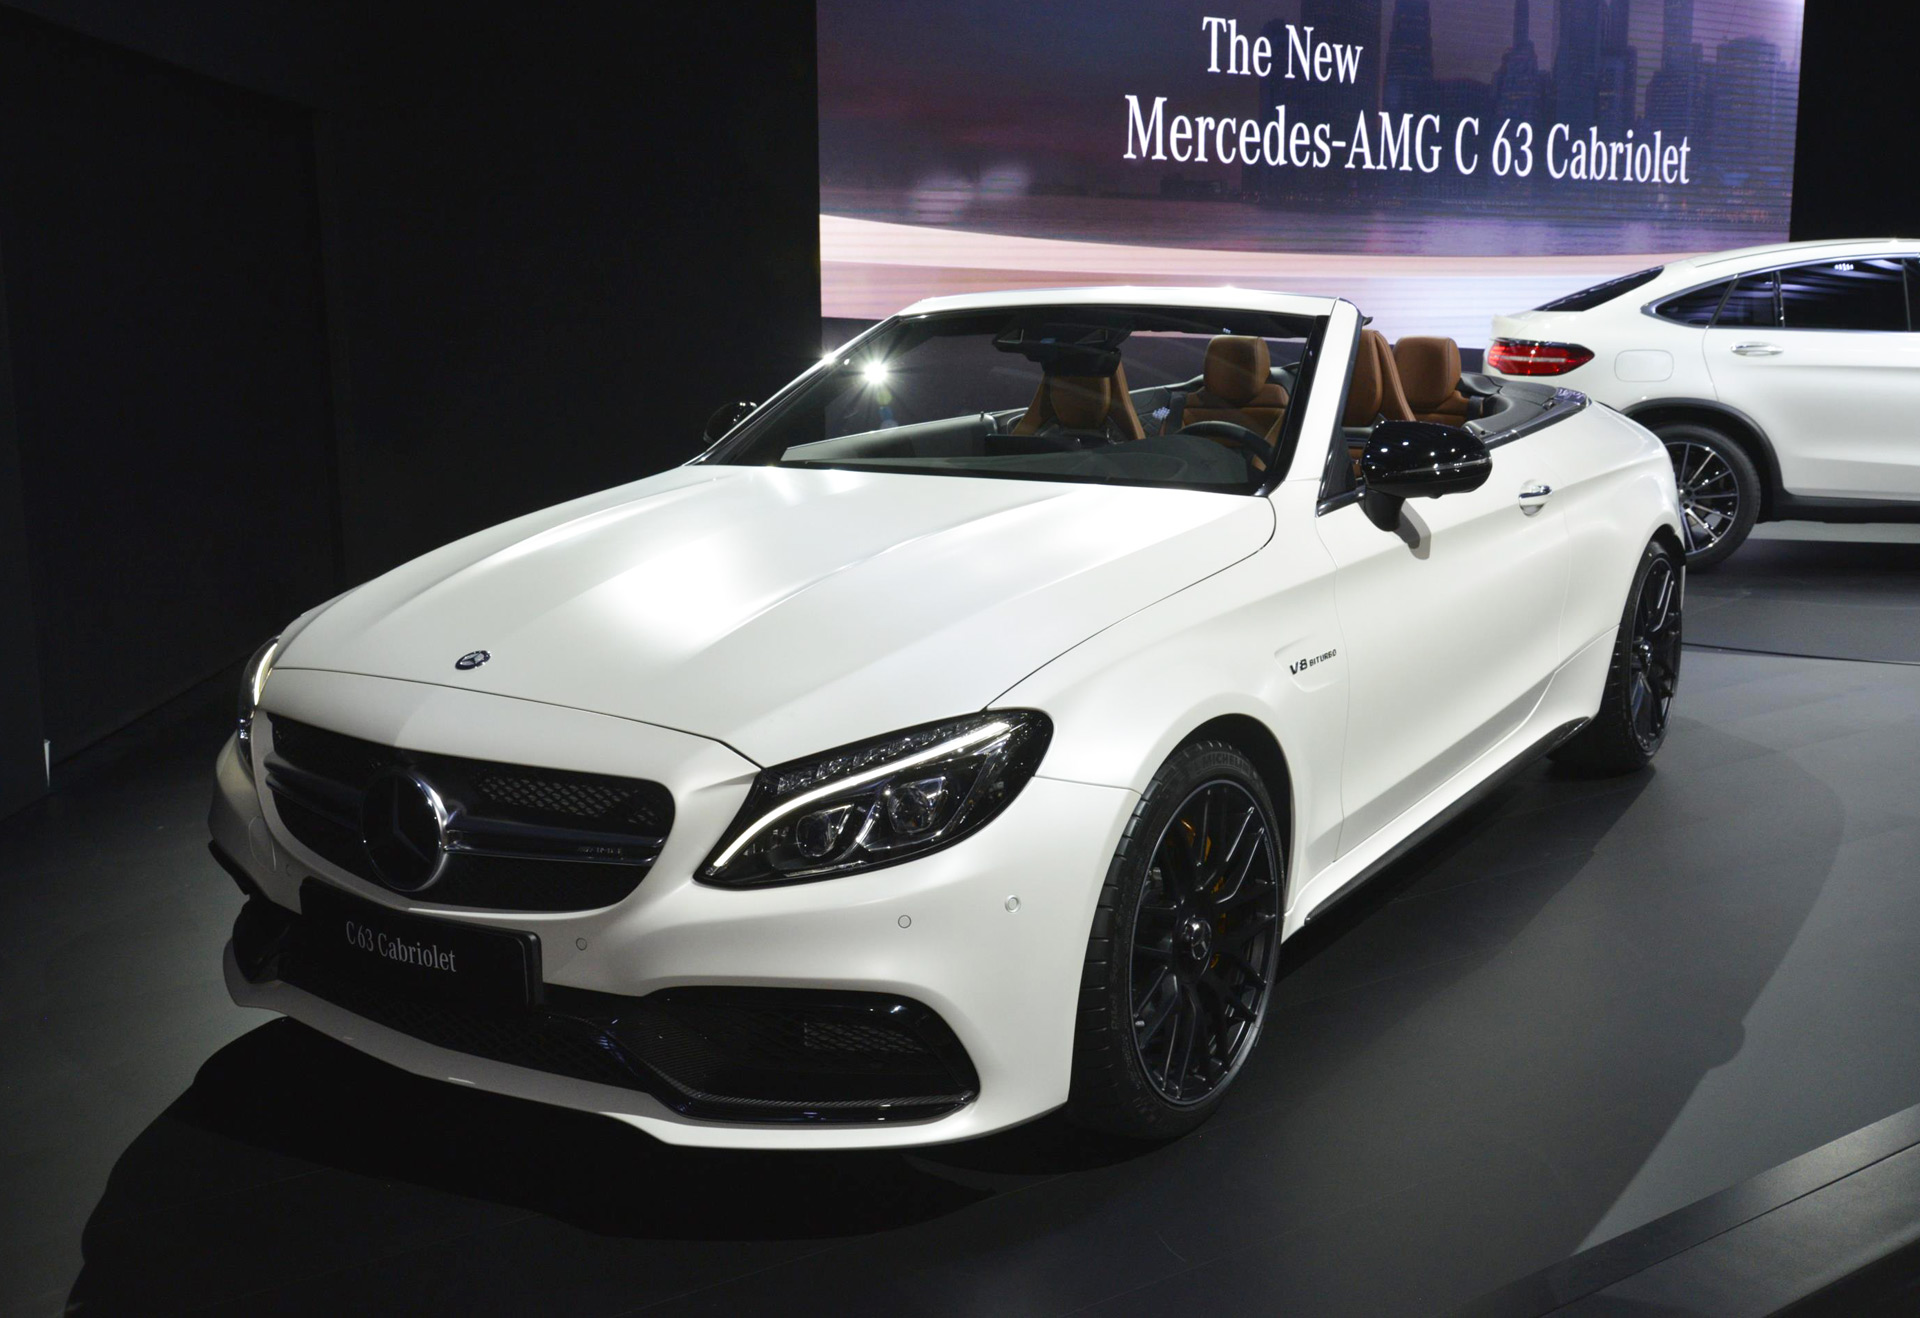 2017 Mercedes-AMG C63 Cabriolet debuts in New York: Live photos and ...